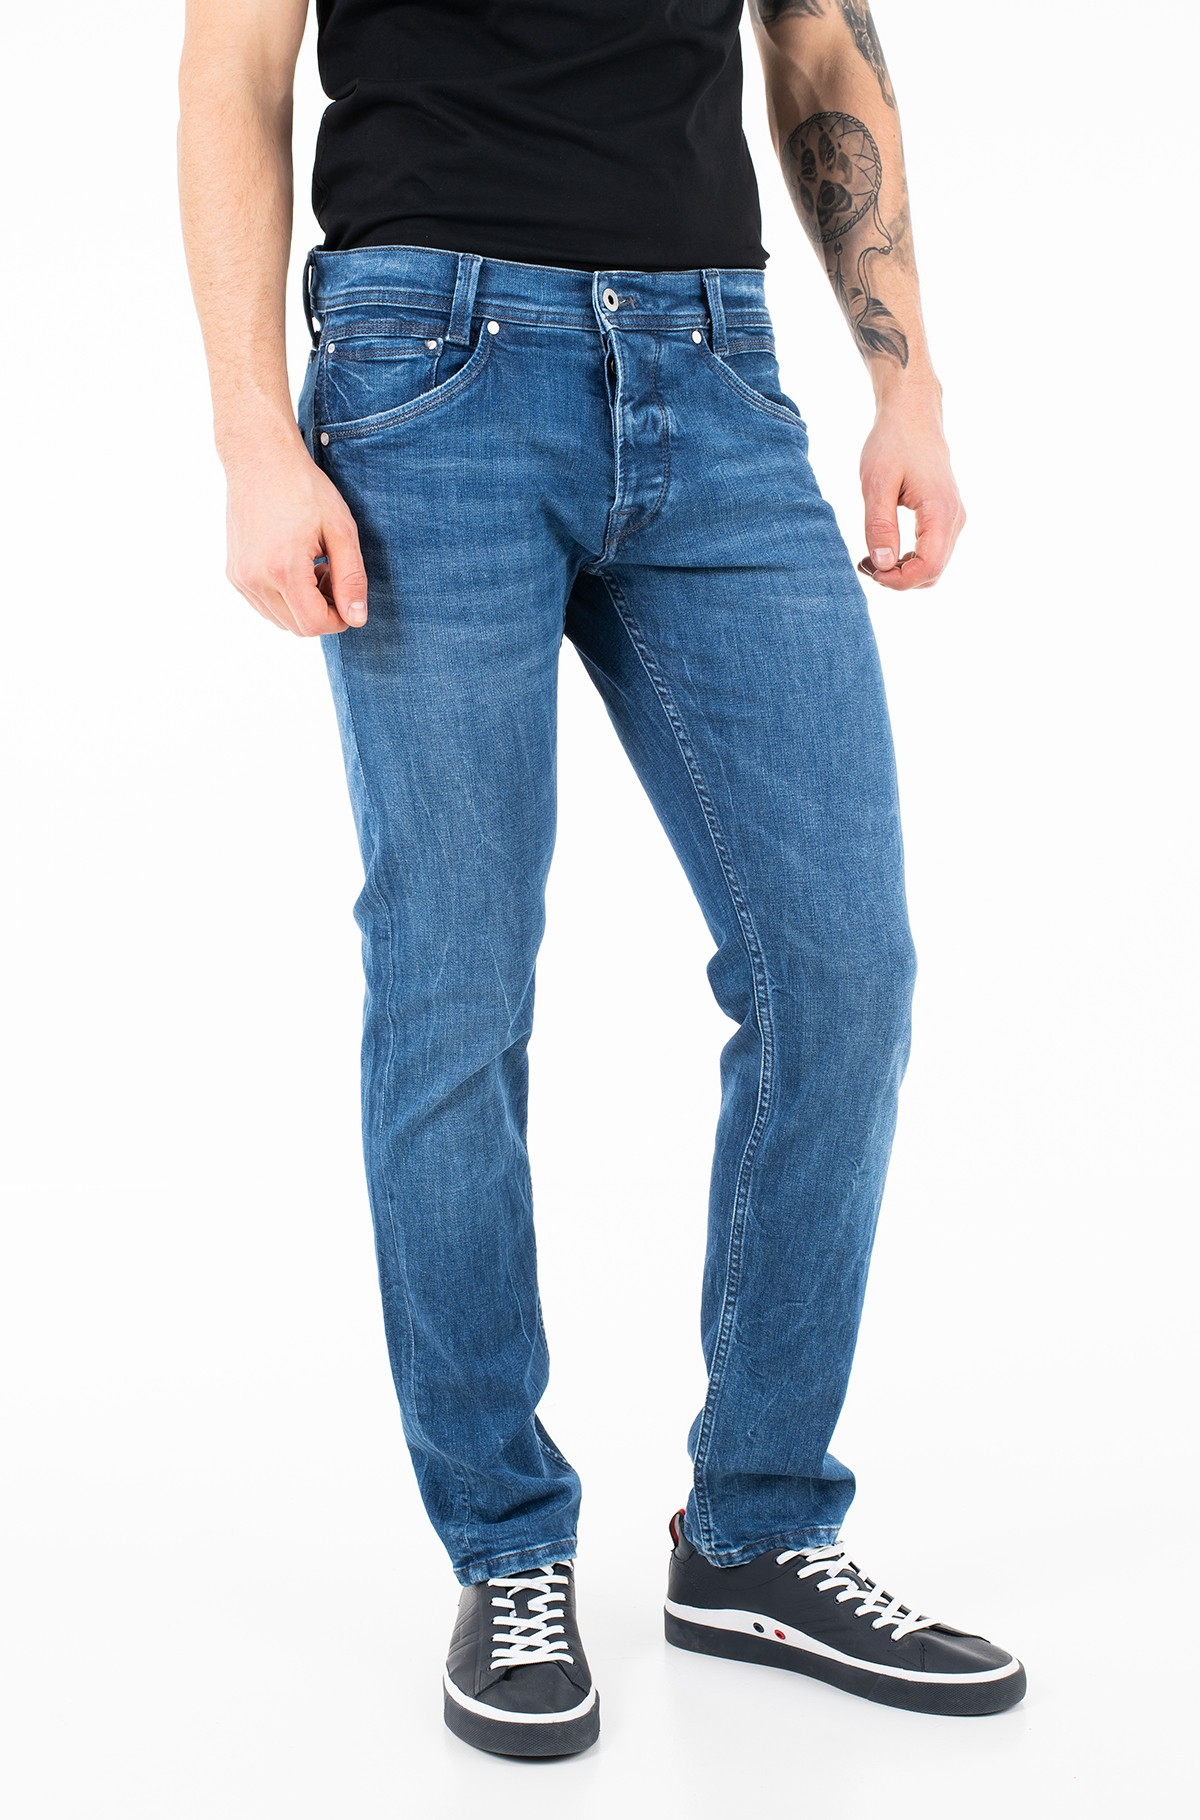 Jeans SPIKE/PM200029GM4-full-1